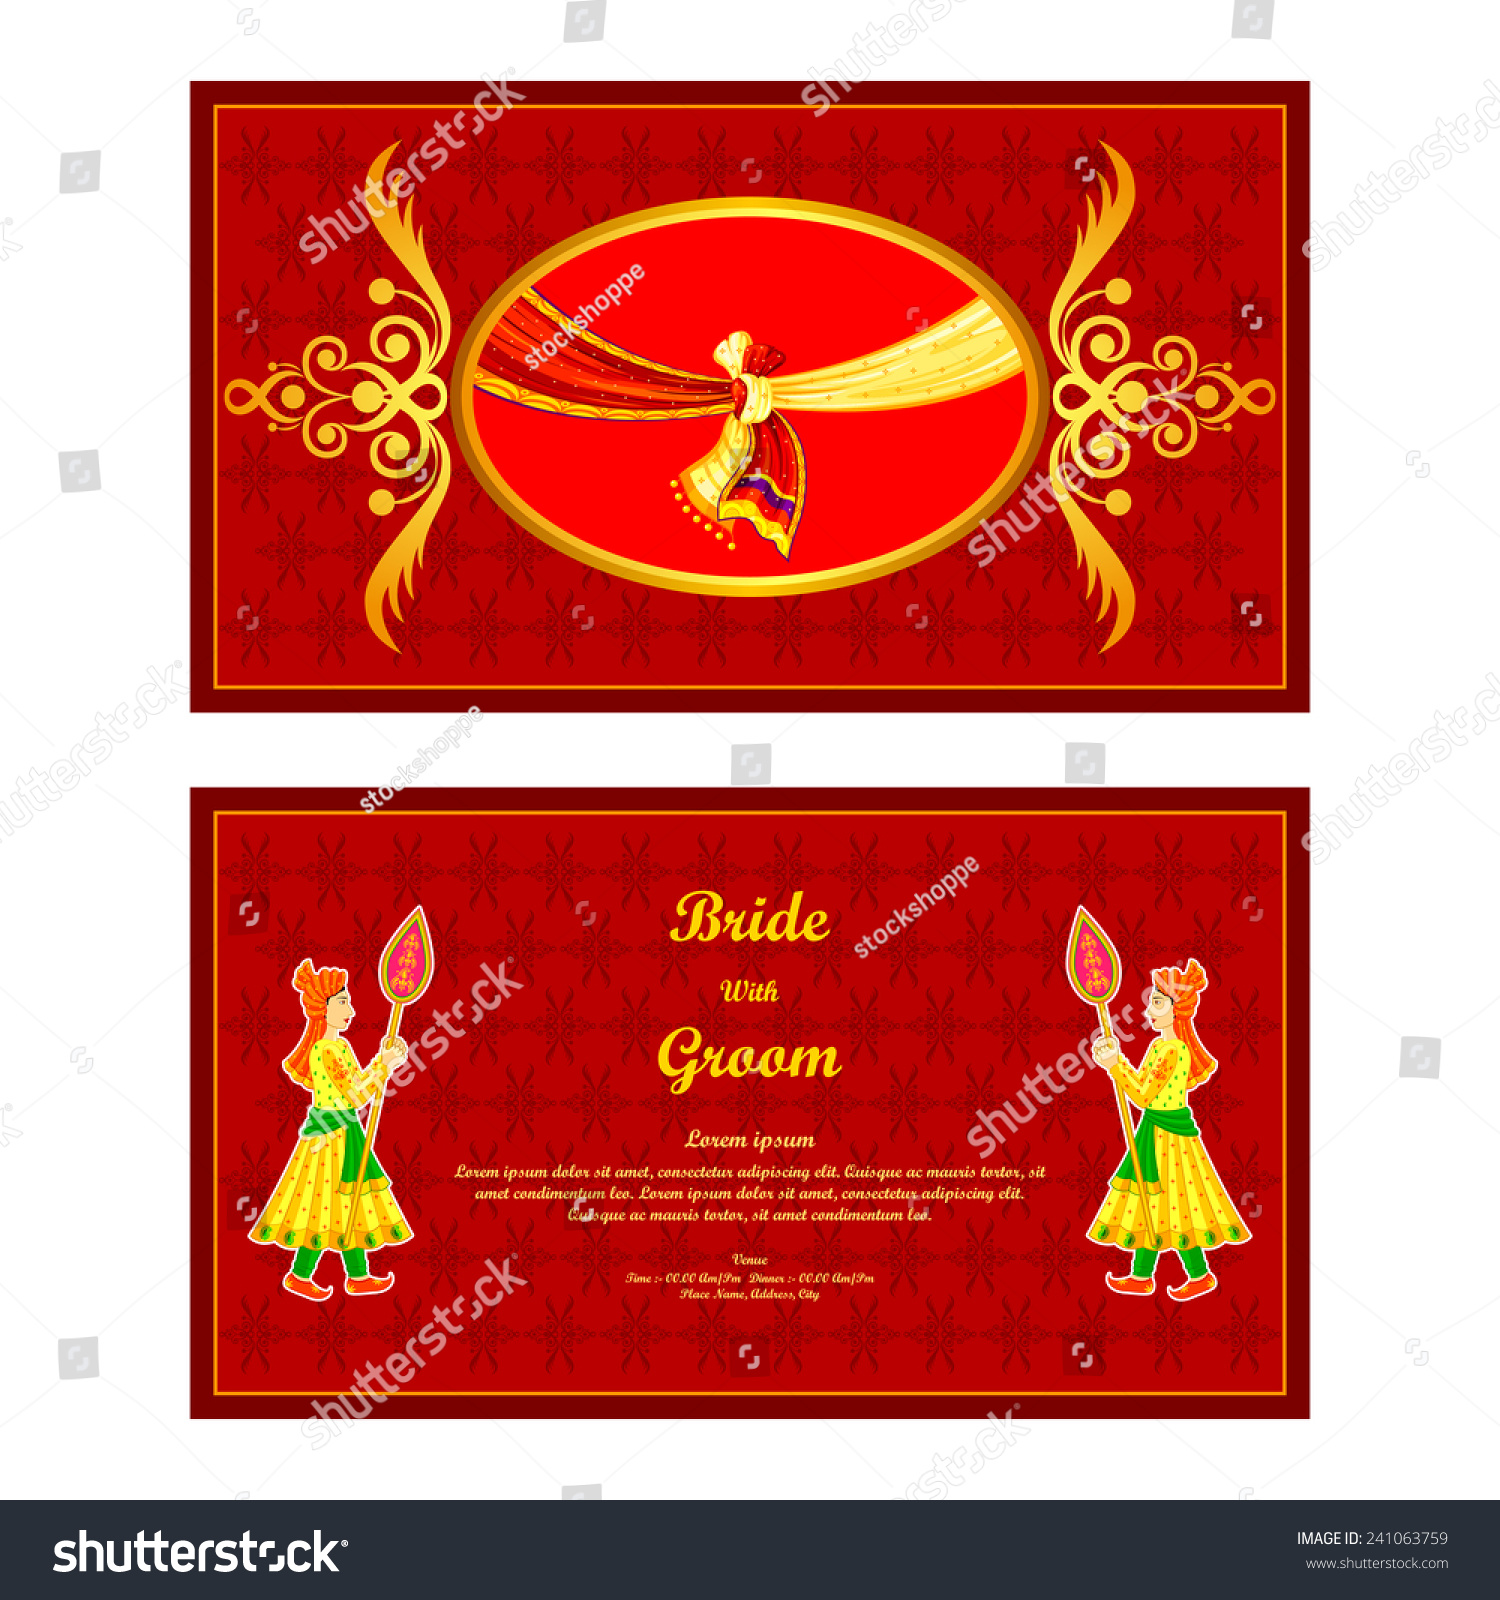 Vector Illustration Indian Wedding Invitation Card Stock Vector ...